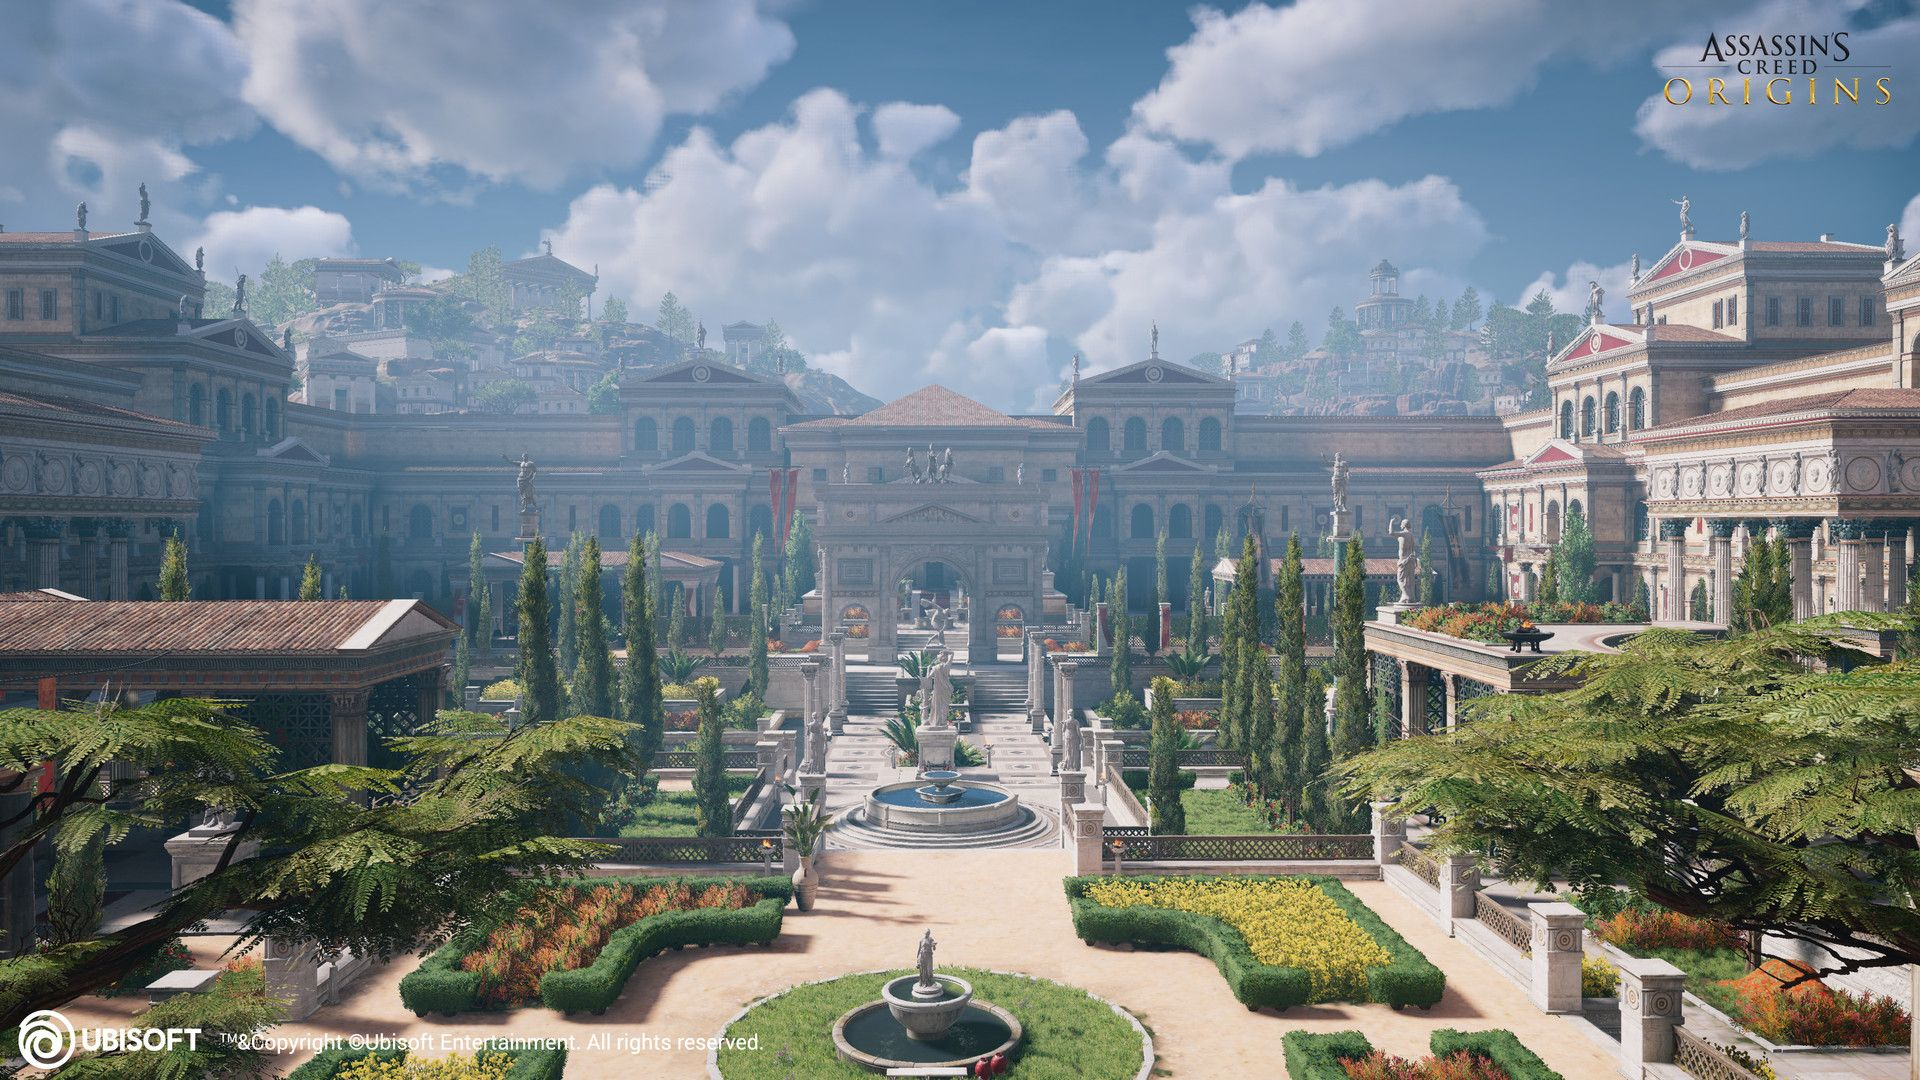 assassin's creed odyssey - photo #3